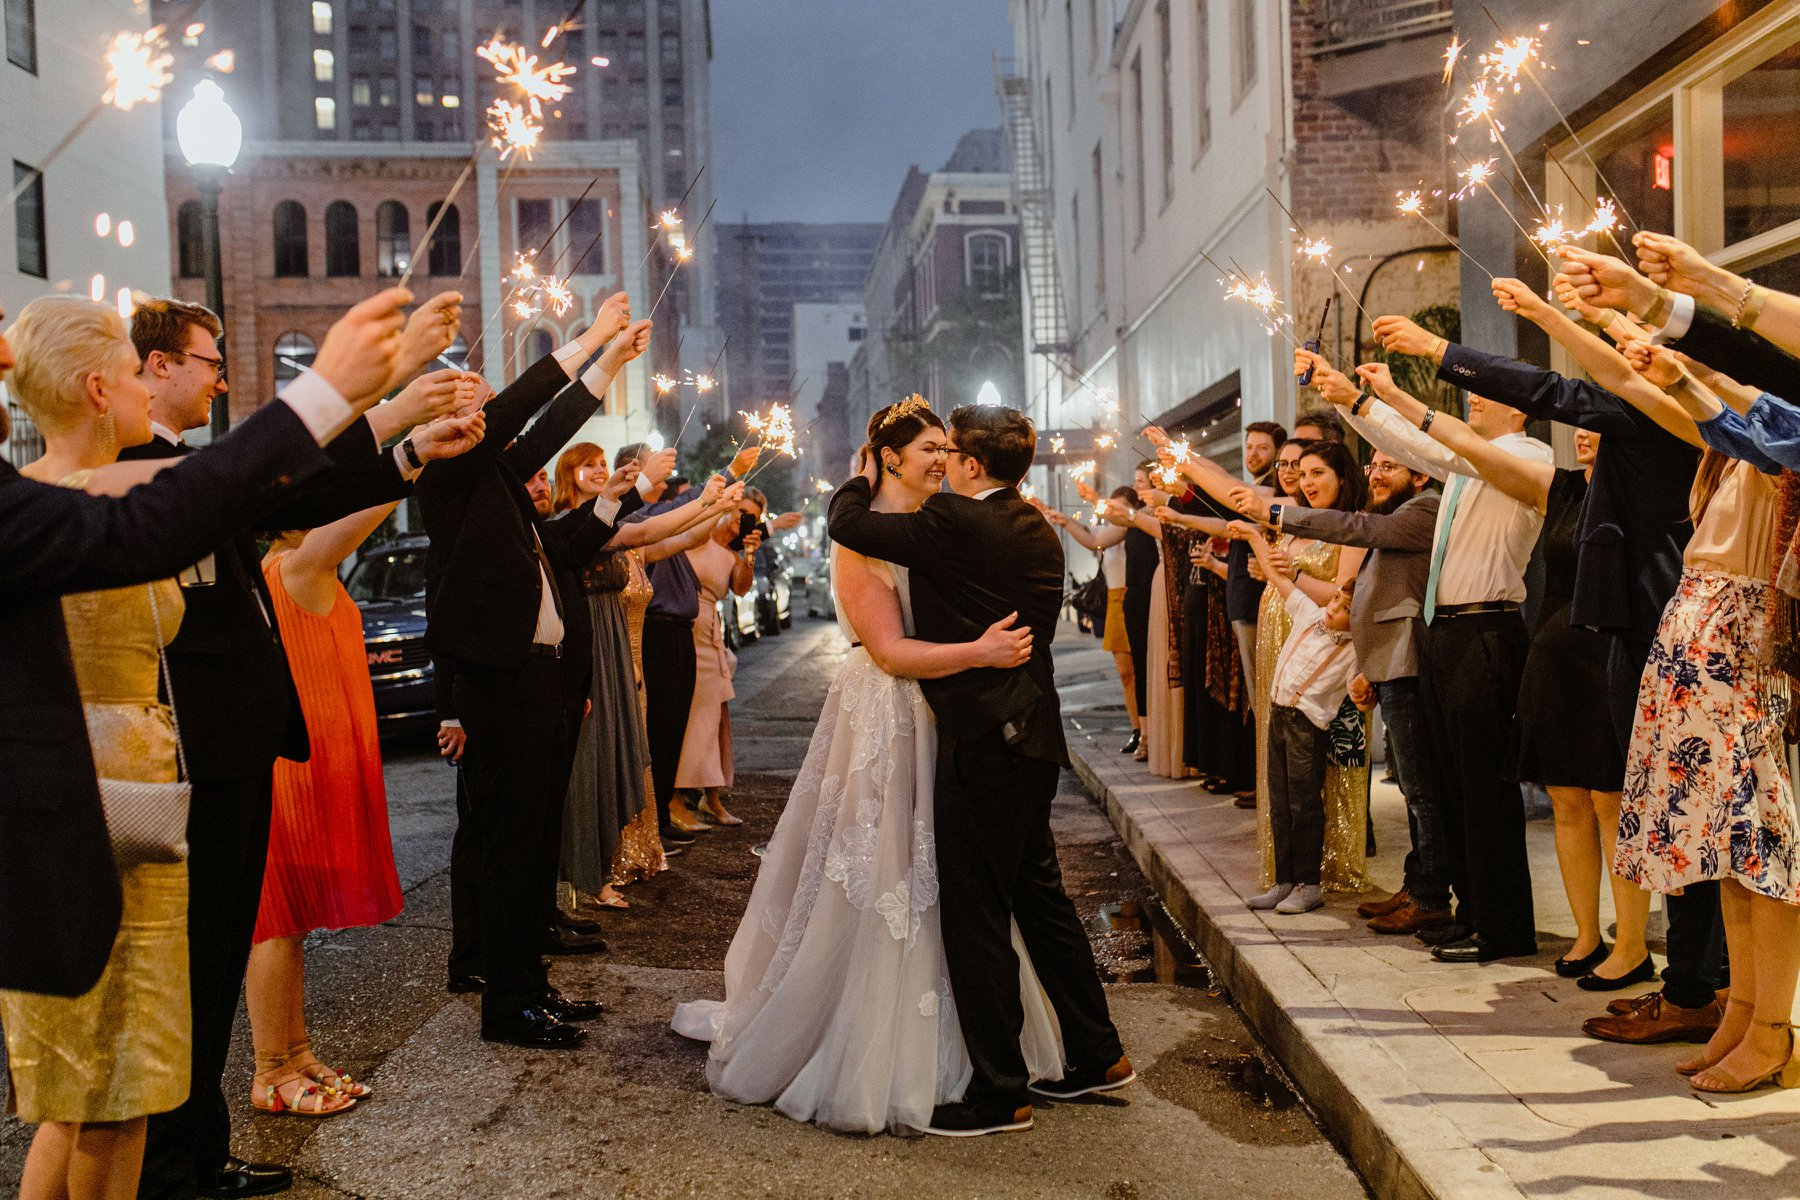 nola_wedding_planner_new_orleans_destination_sparkler_exit